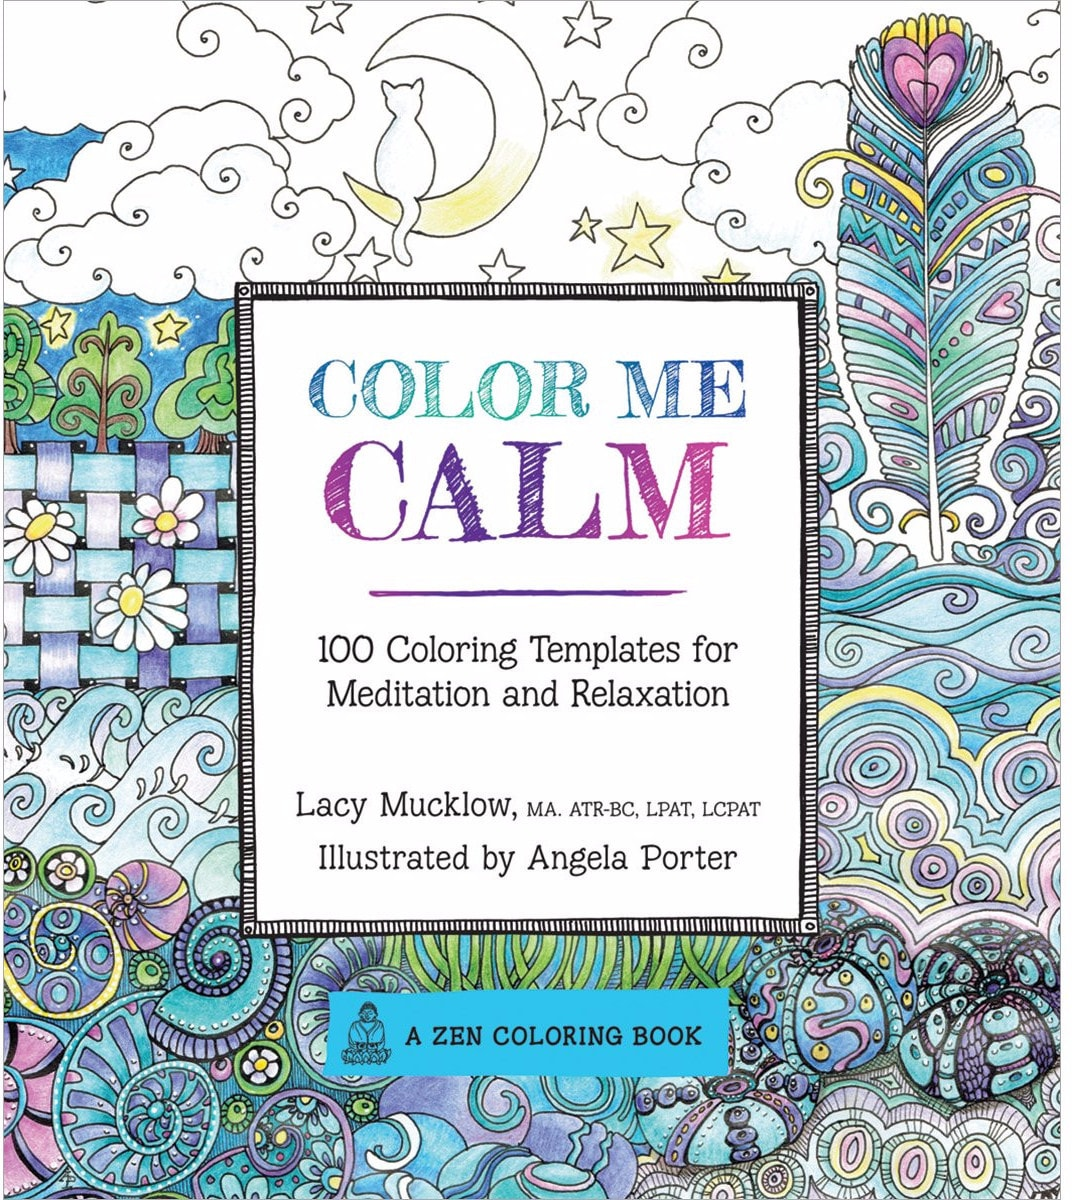 color me calm 100 coloring templates for meditation and relaxation coloring book zone - Best Coloring Book